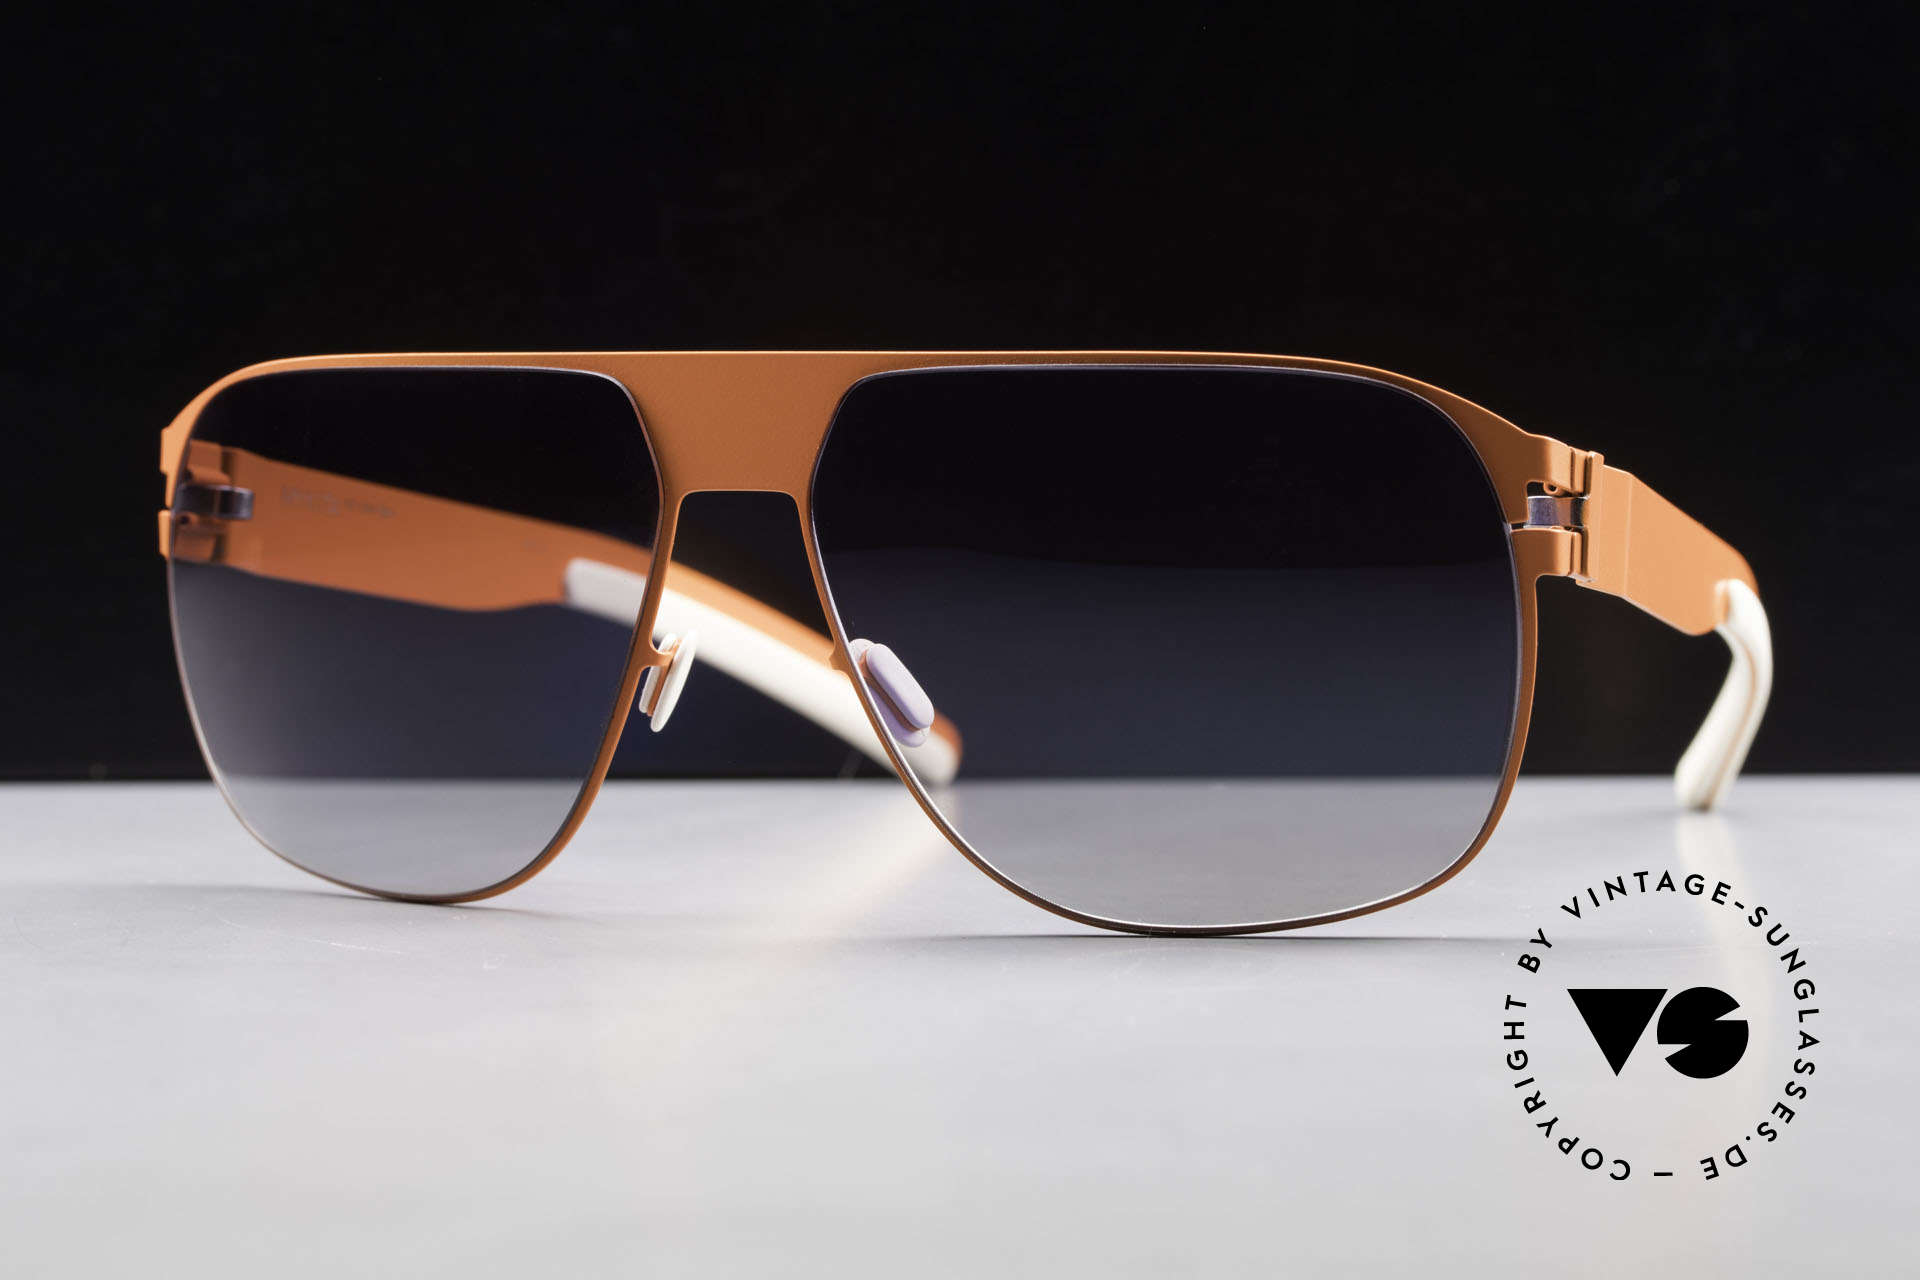 Mykita Tim Collection No 1 Shades 2011's, Model No.1 Sun Tim Neonorange, black gradient, 61/14, Made for Men